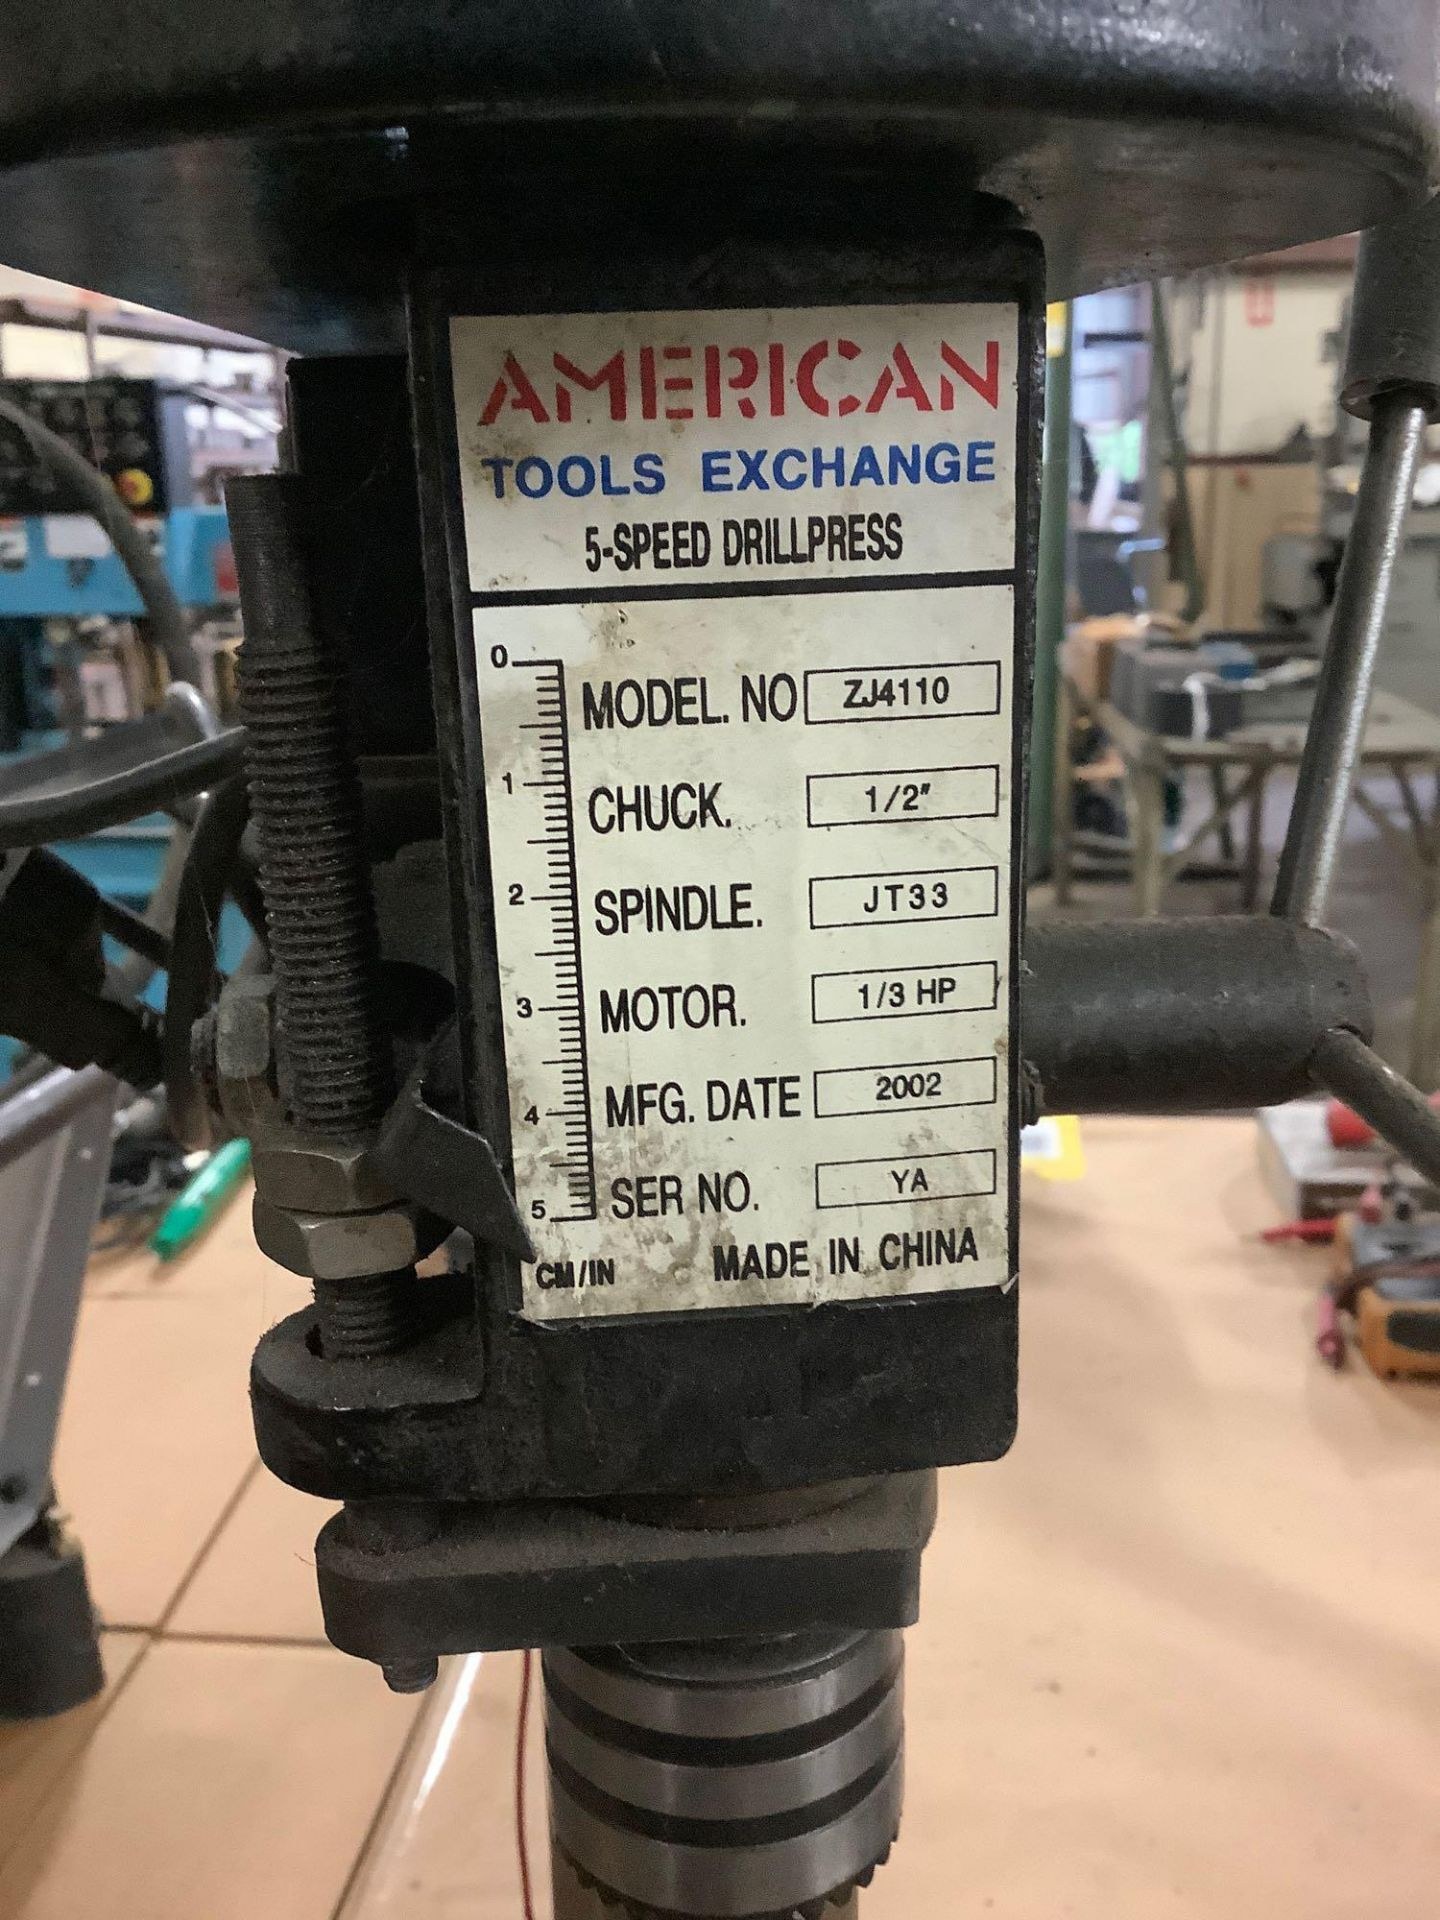 American Table Type 5-Speed Drill Press Model ZJ4110 - Image 3 of 3